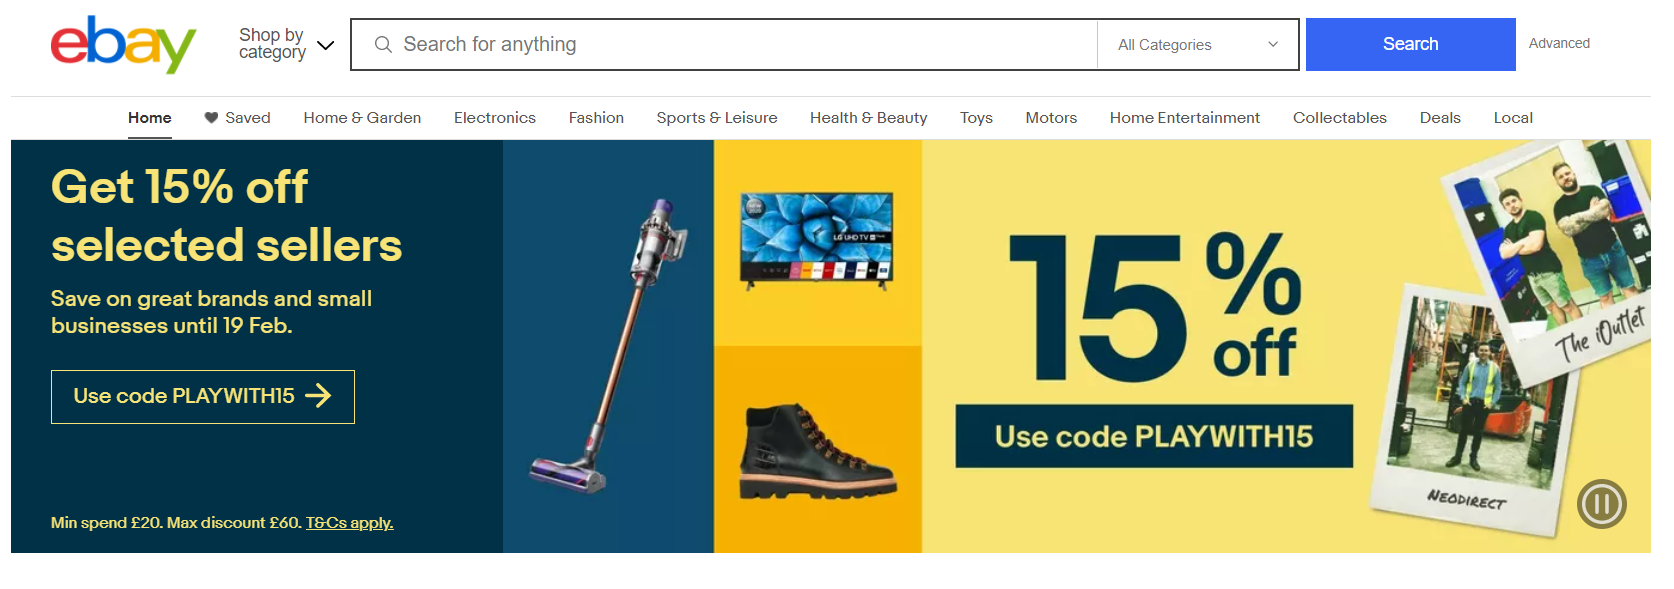 Screenshot of eBay UK